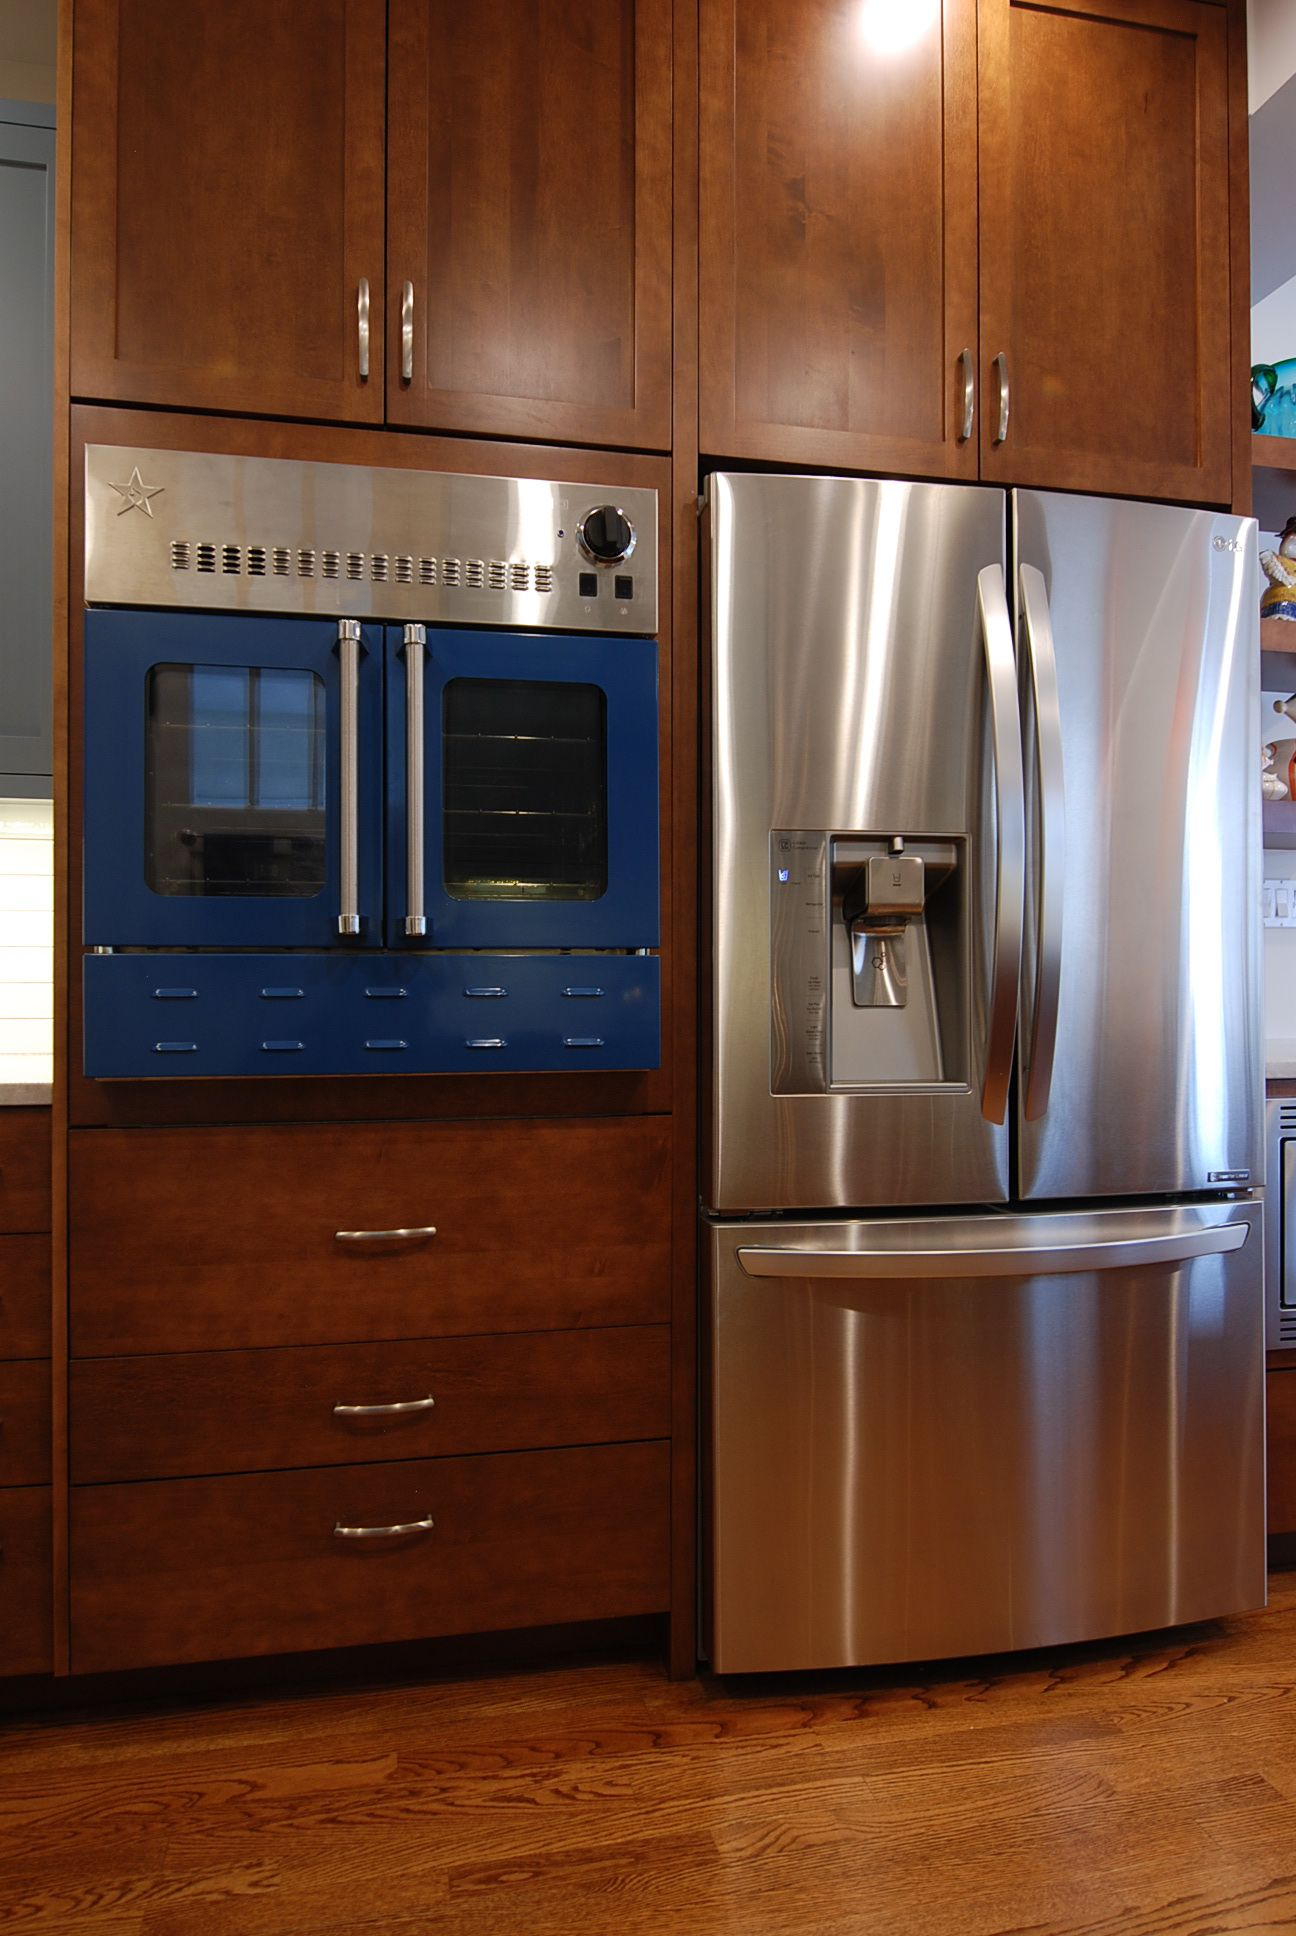 Gentil French Door Refrigerator, Blue Star Wall Oven, Shaker Wood Door Style, Oak  Wood Floors